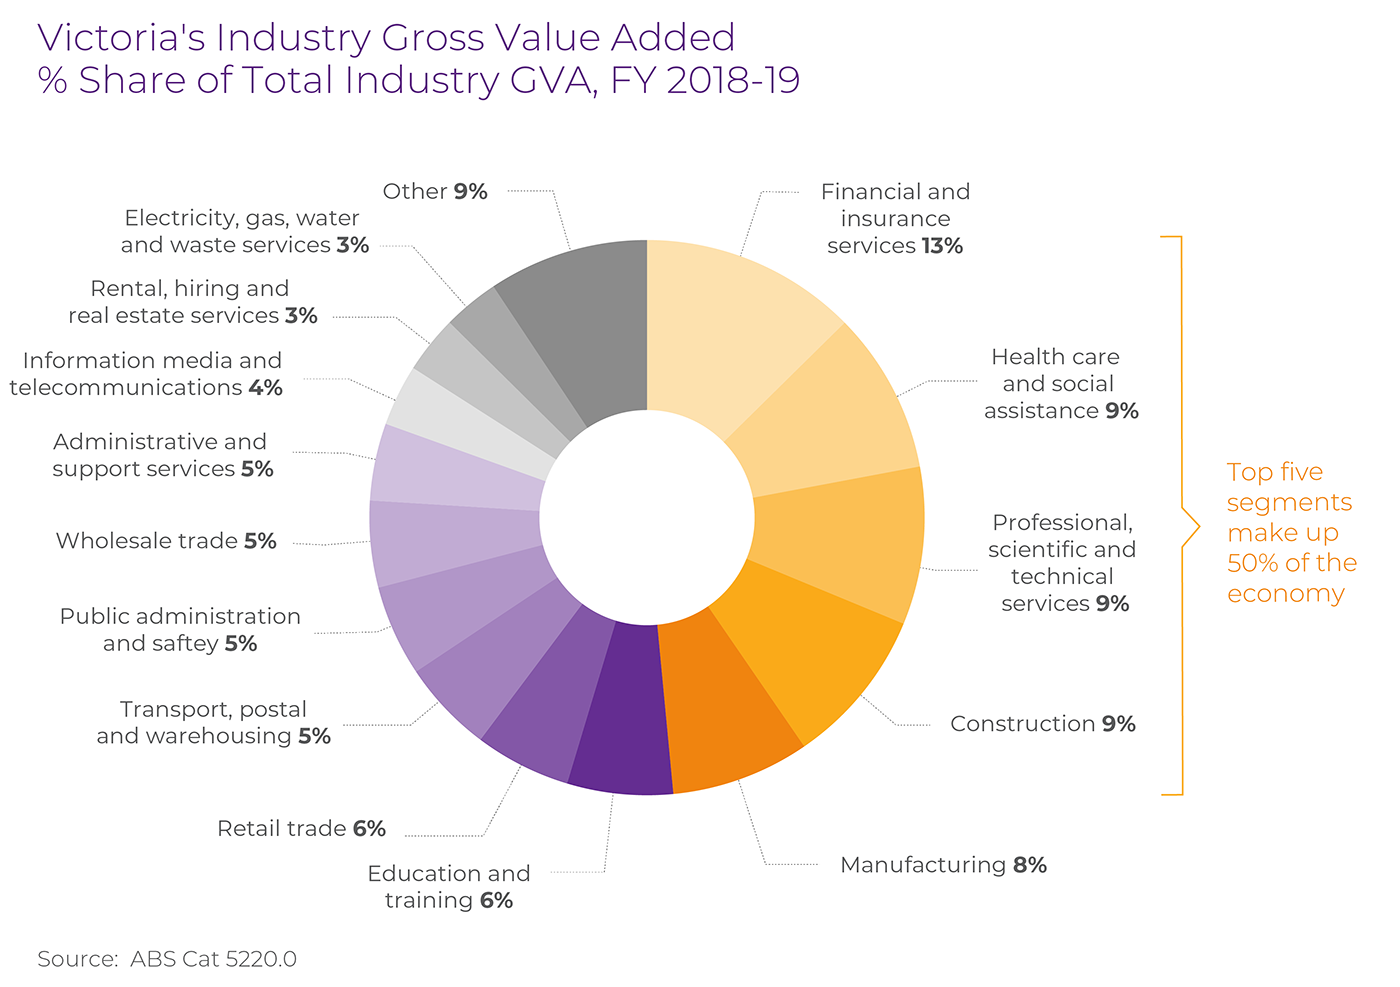 Services industry accounts for 28% of GVA